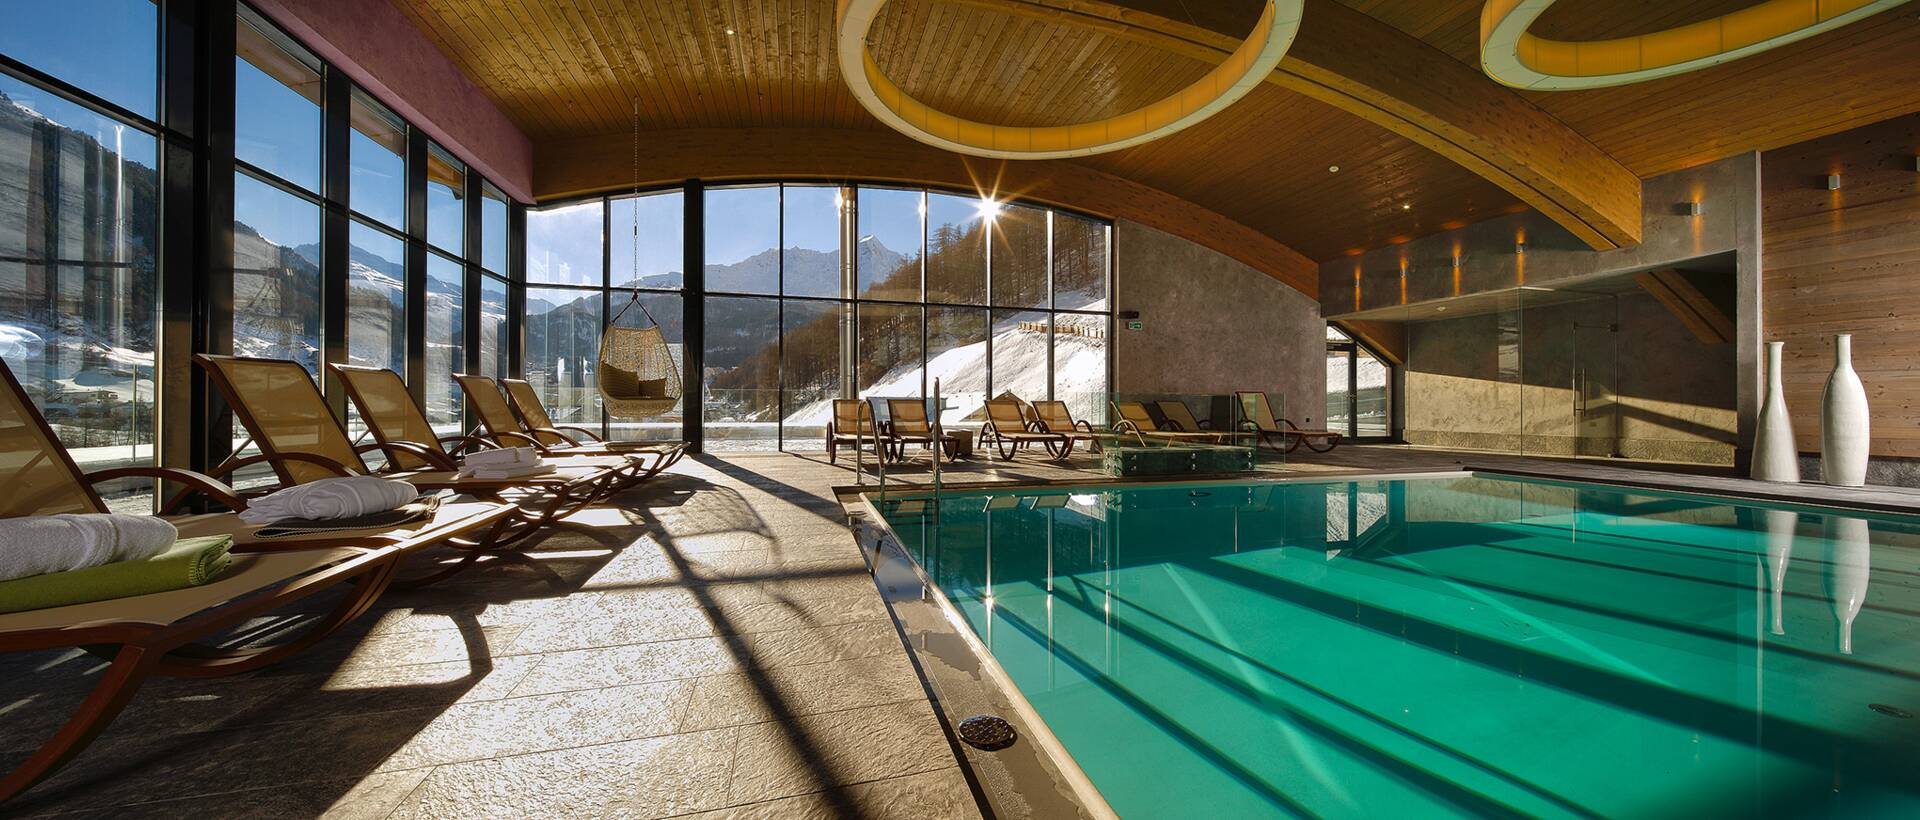 pool wellnesshotel sölden